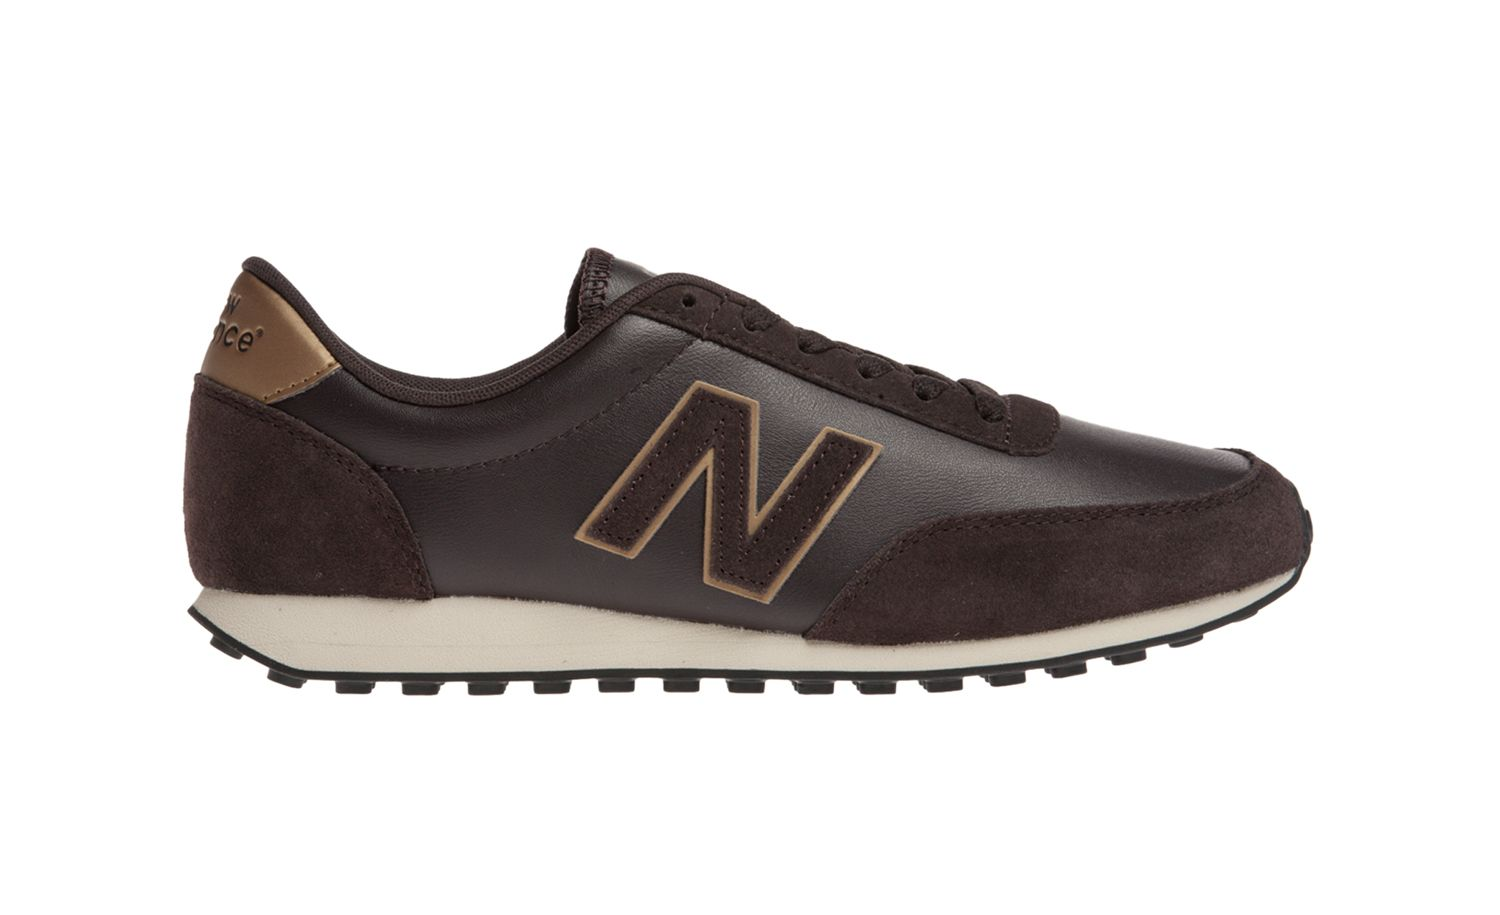 New Balance 410 Leather